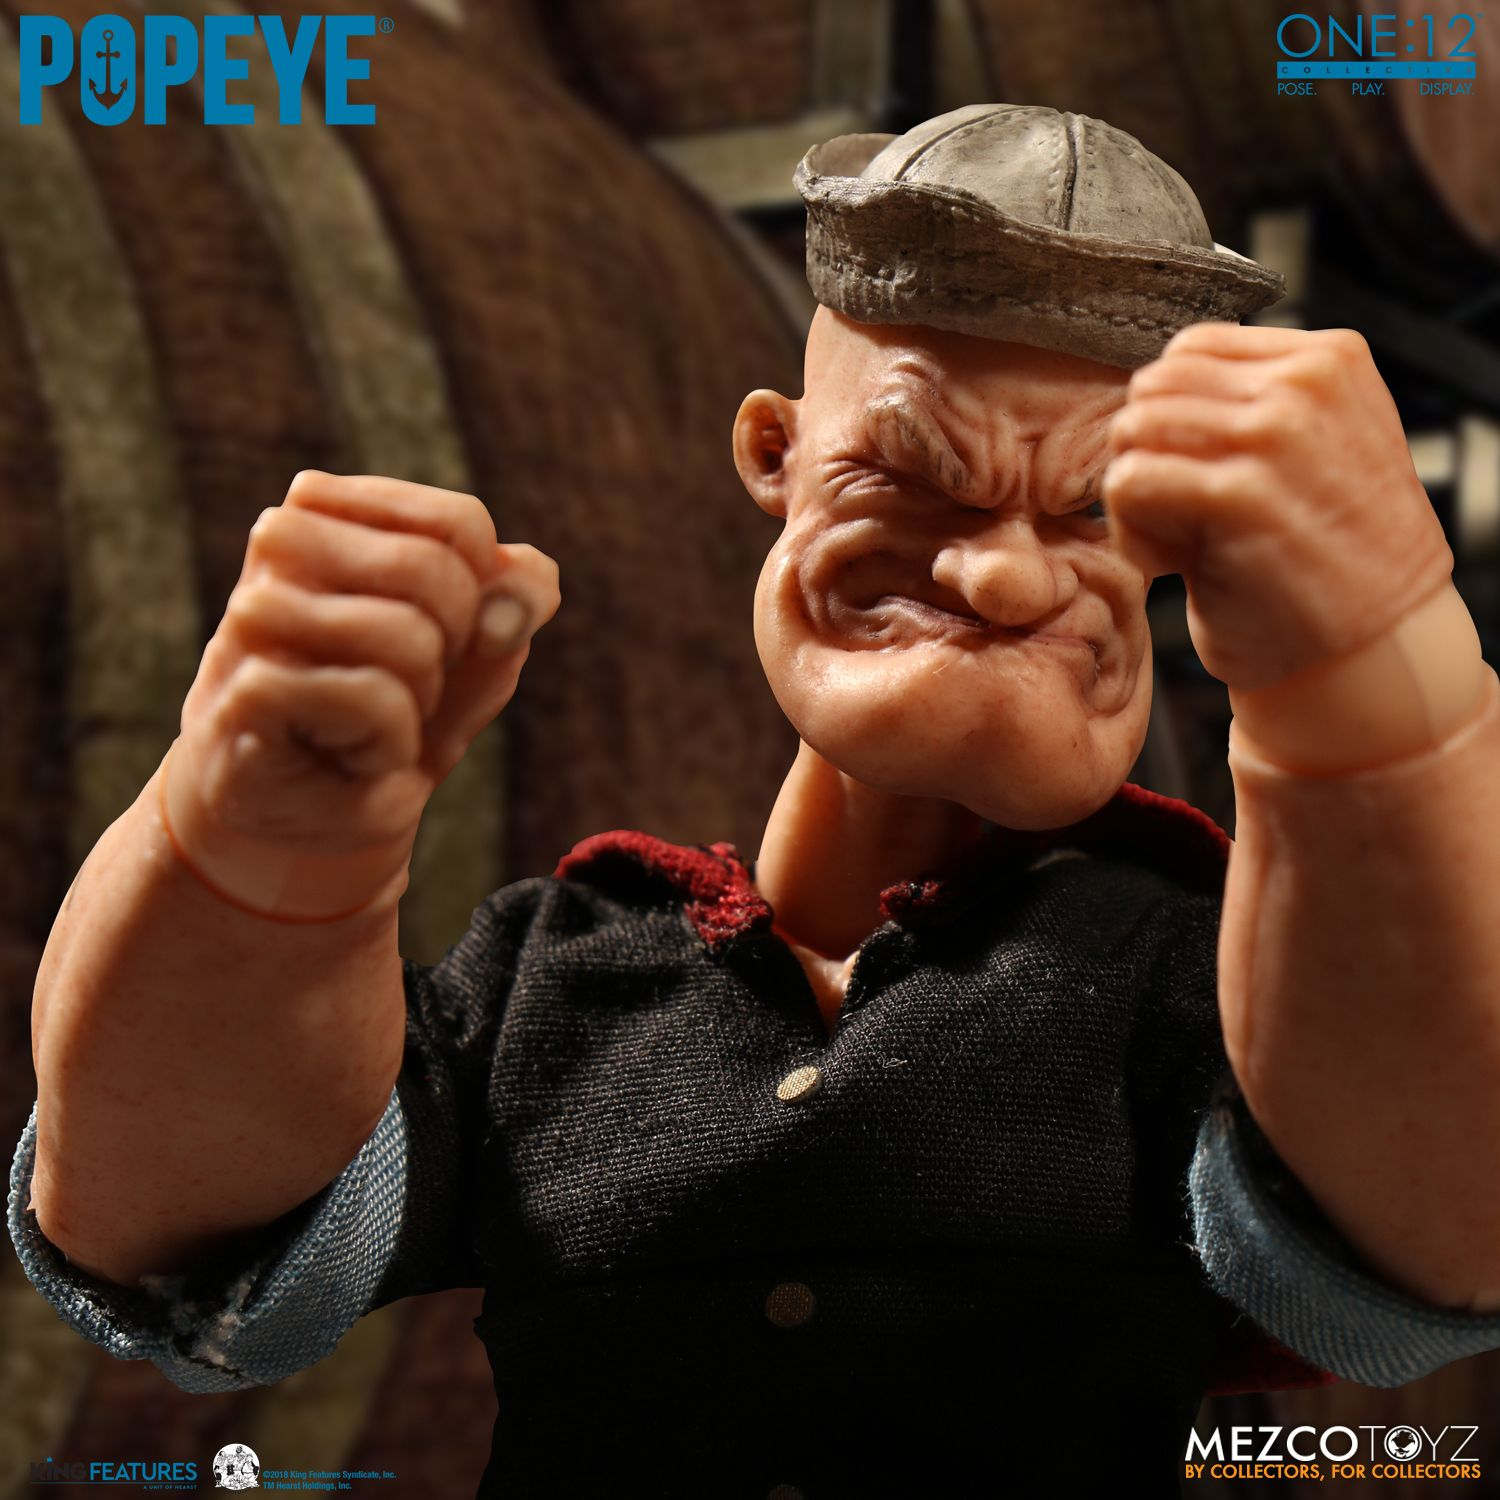 Mezco - One:12 Collective - Popeye